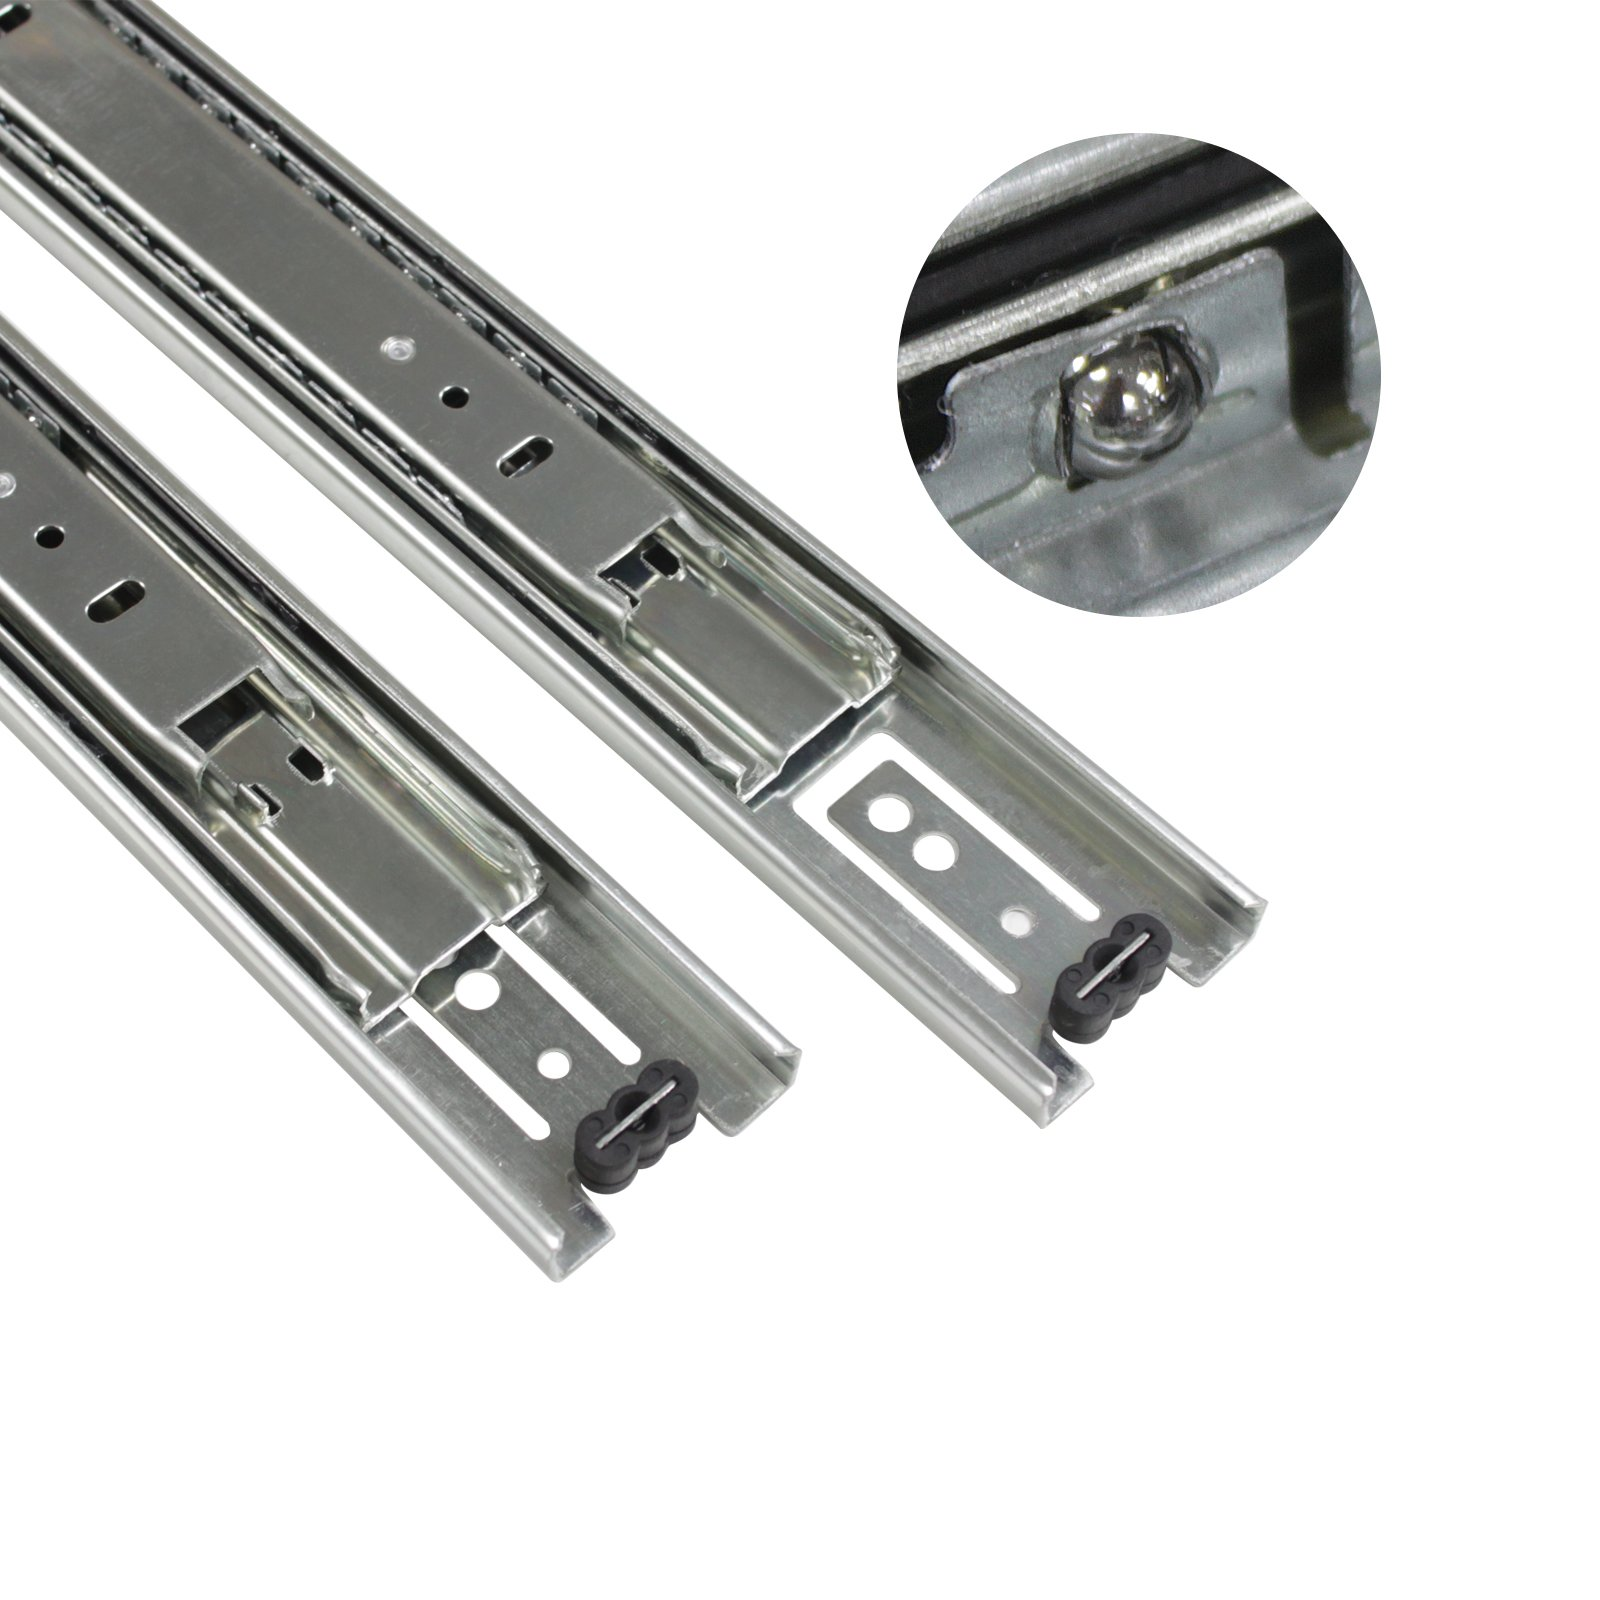 2 Pairs 22 inch Full Extension Side Mount Drawer Slides 3-Folds Ball Bearing Heavy Duty 100 lb Thickness:1.01.01.2mm by Probrico (Image #3)